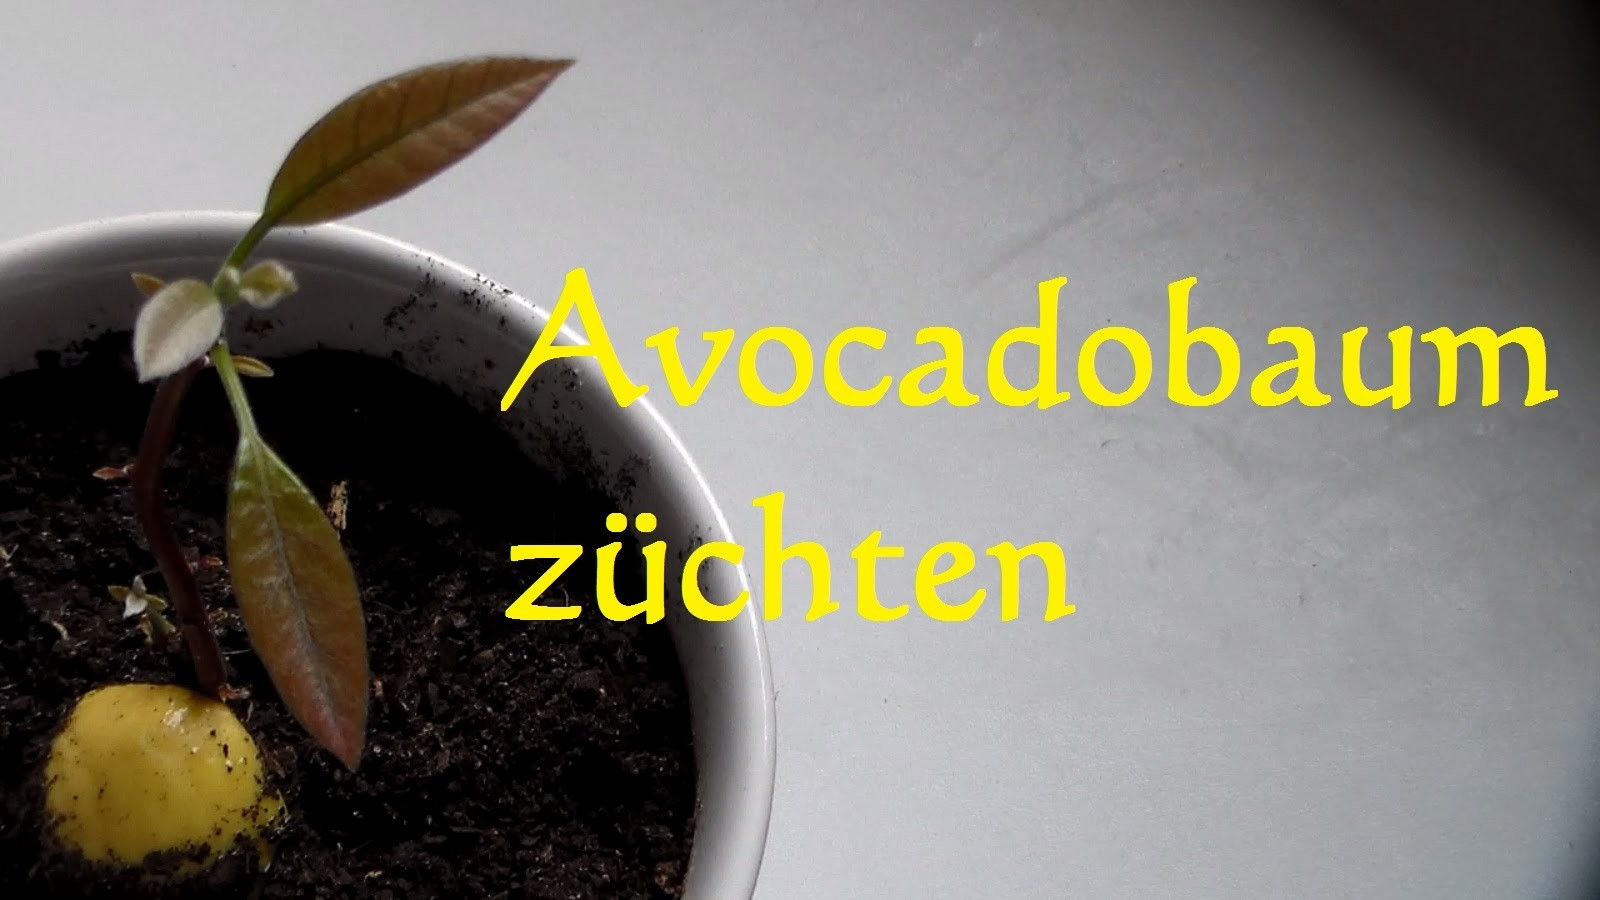 avocadobaum selber ziehen avocado z chten avocado einpflanzen how to grow avocado tree. Black Bedroom Furniture Sets. Home Design Ideas